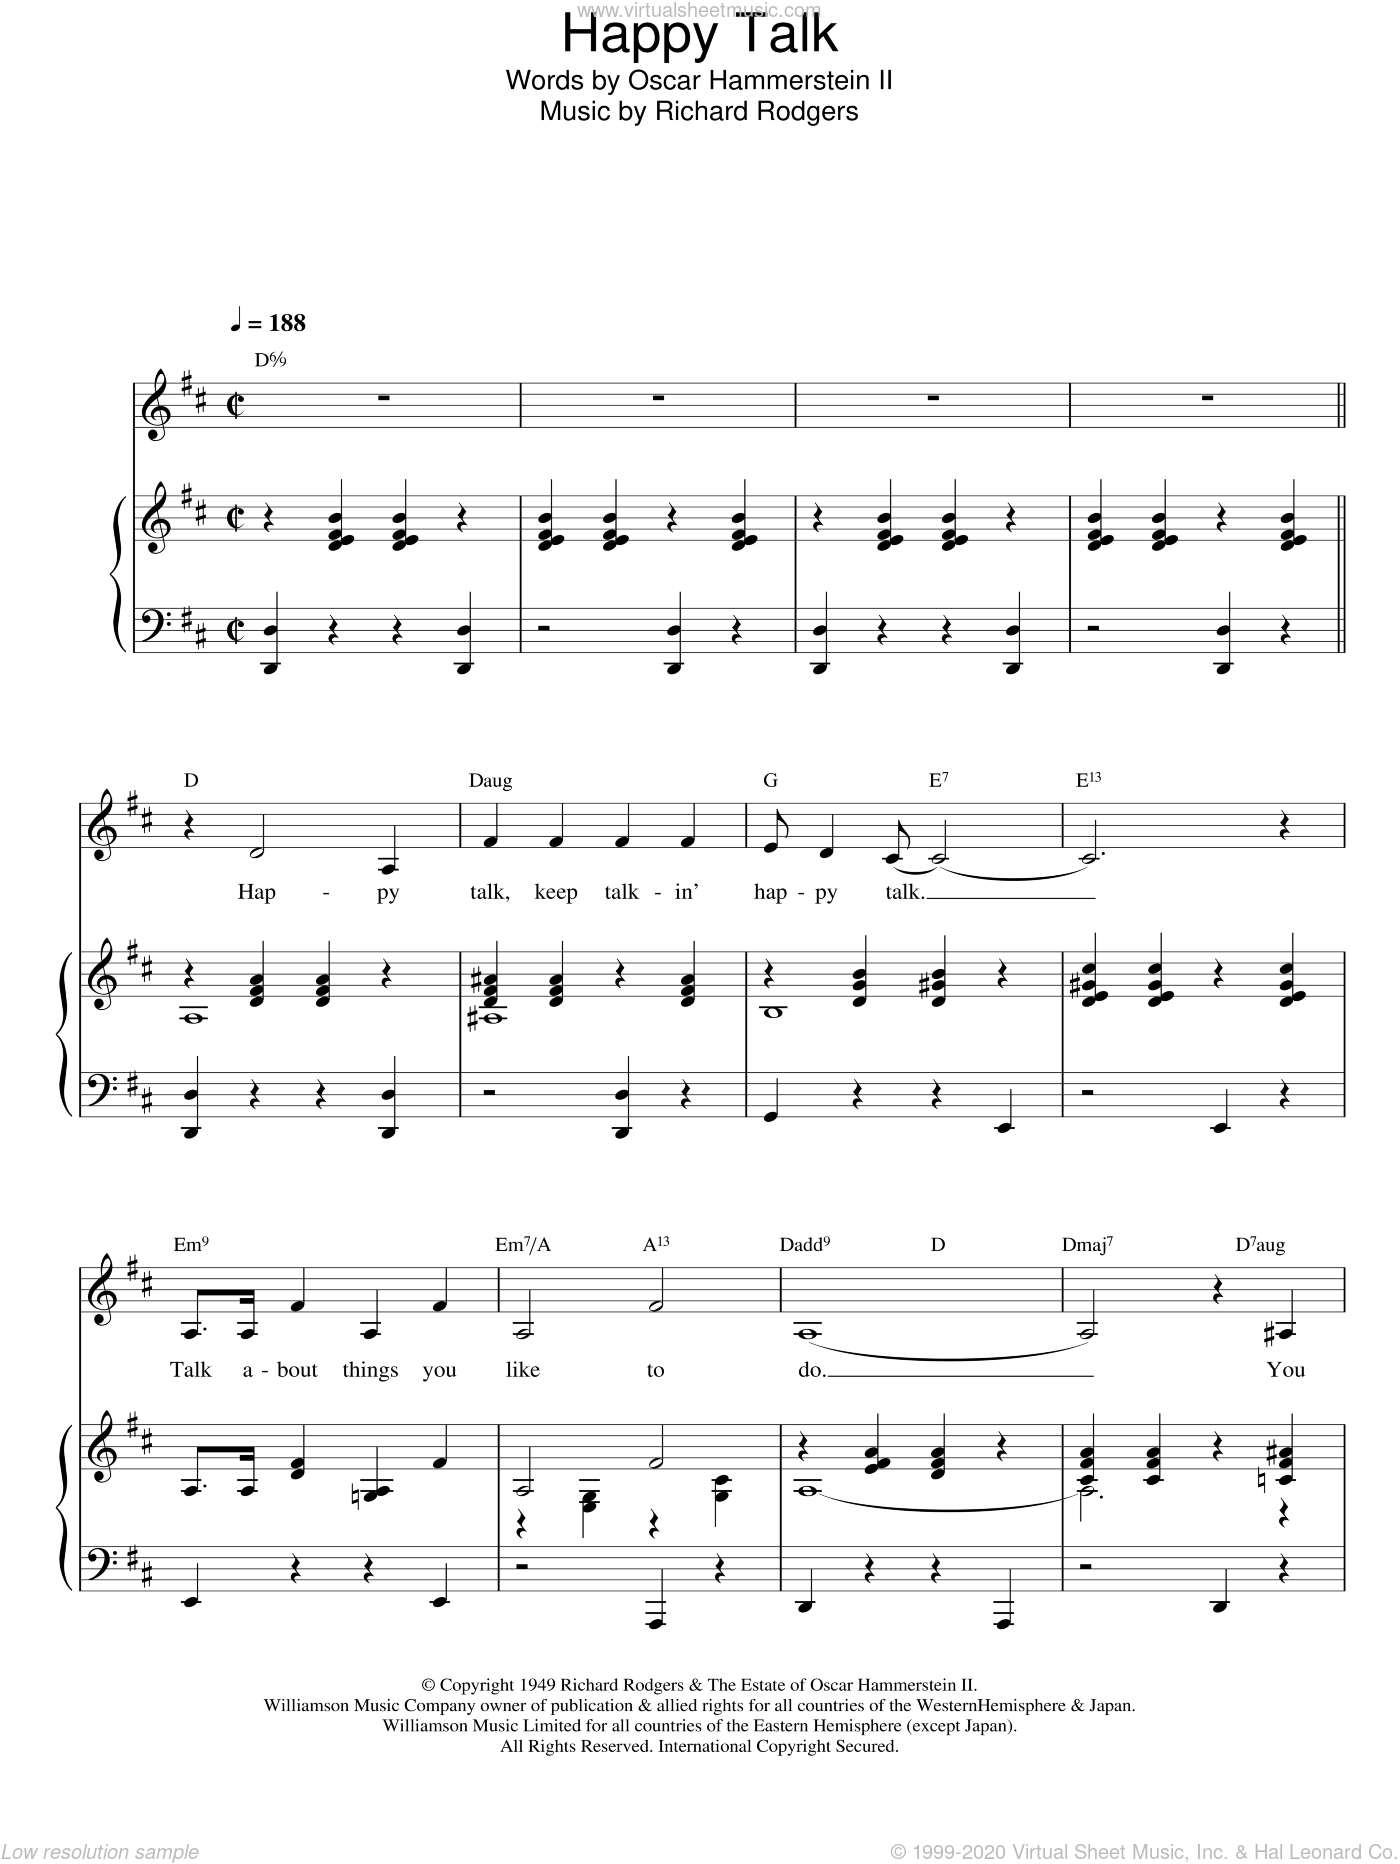 Happy Talk sheet music for voice and piano by Richard Rodgers, Rodgers & Hammerstein and Oscar Hammerstein. Score Image Preview.